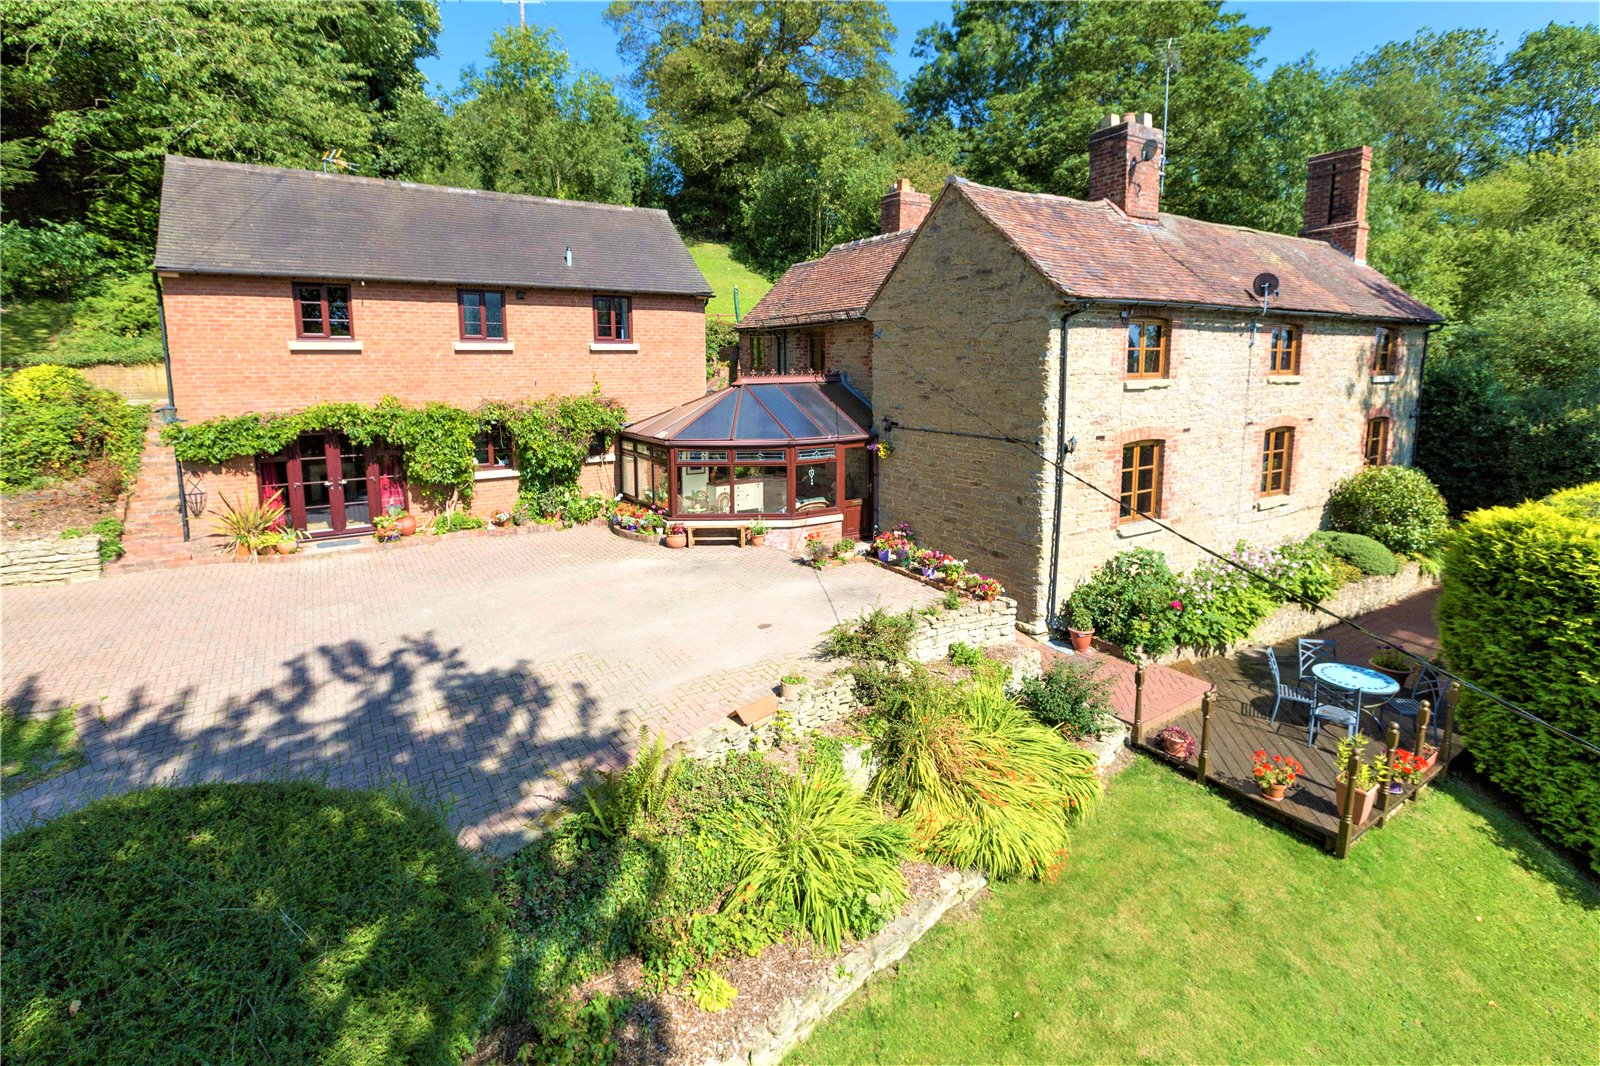 The Bank House, 13-14 Bourton, Much Wenlock, Shropshire, TF13